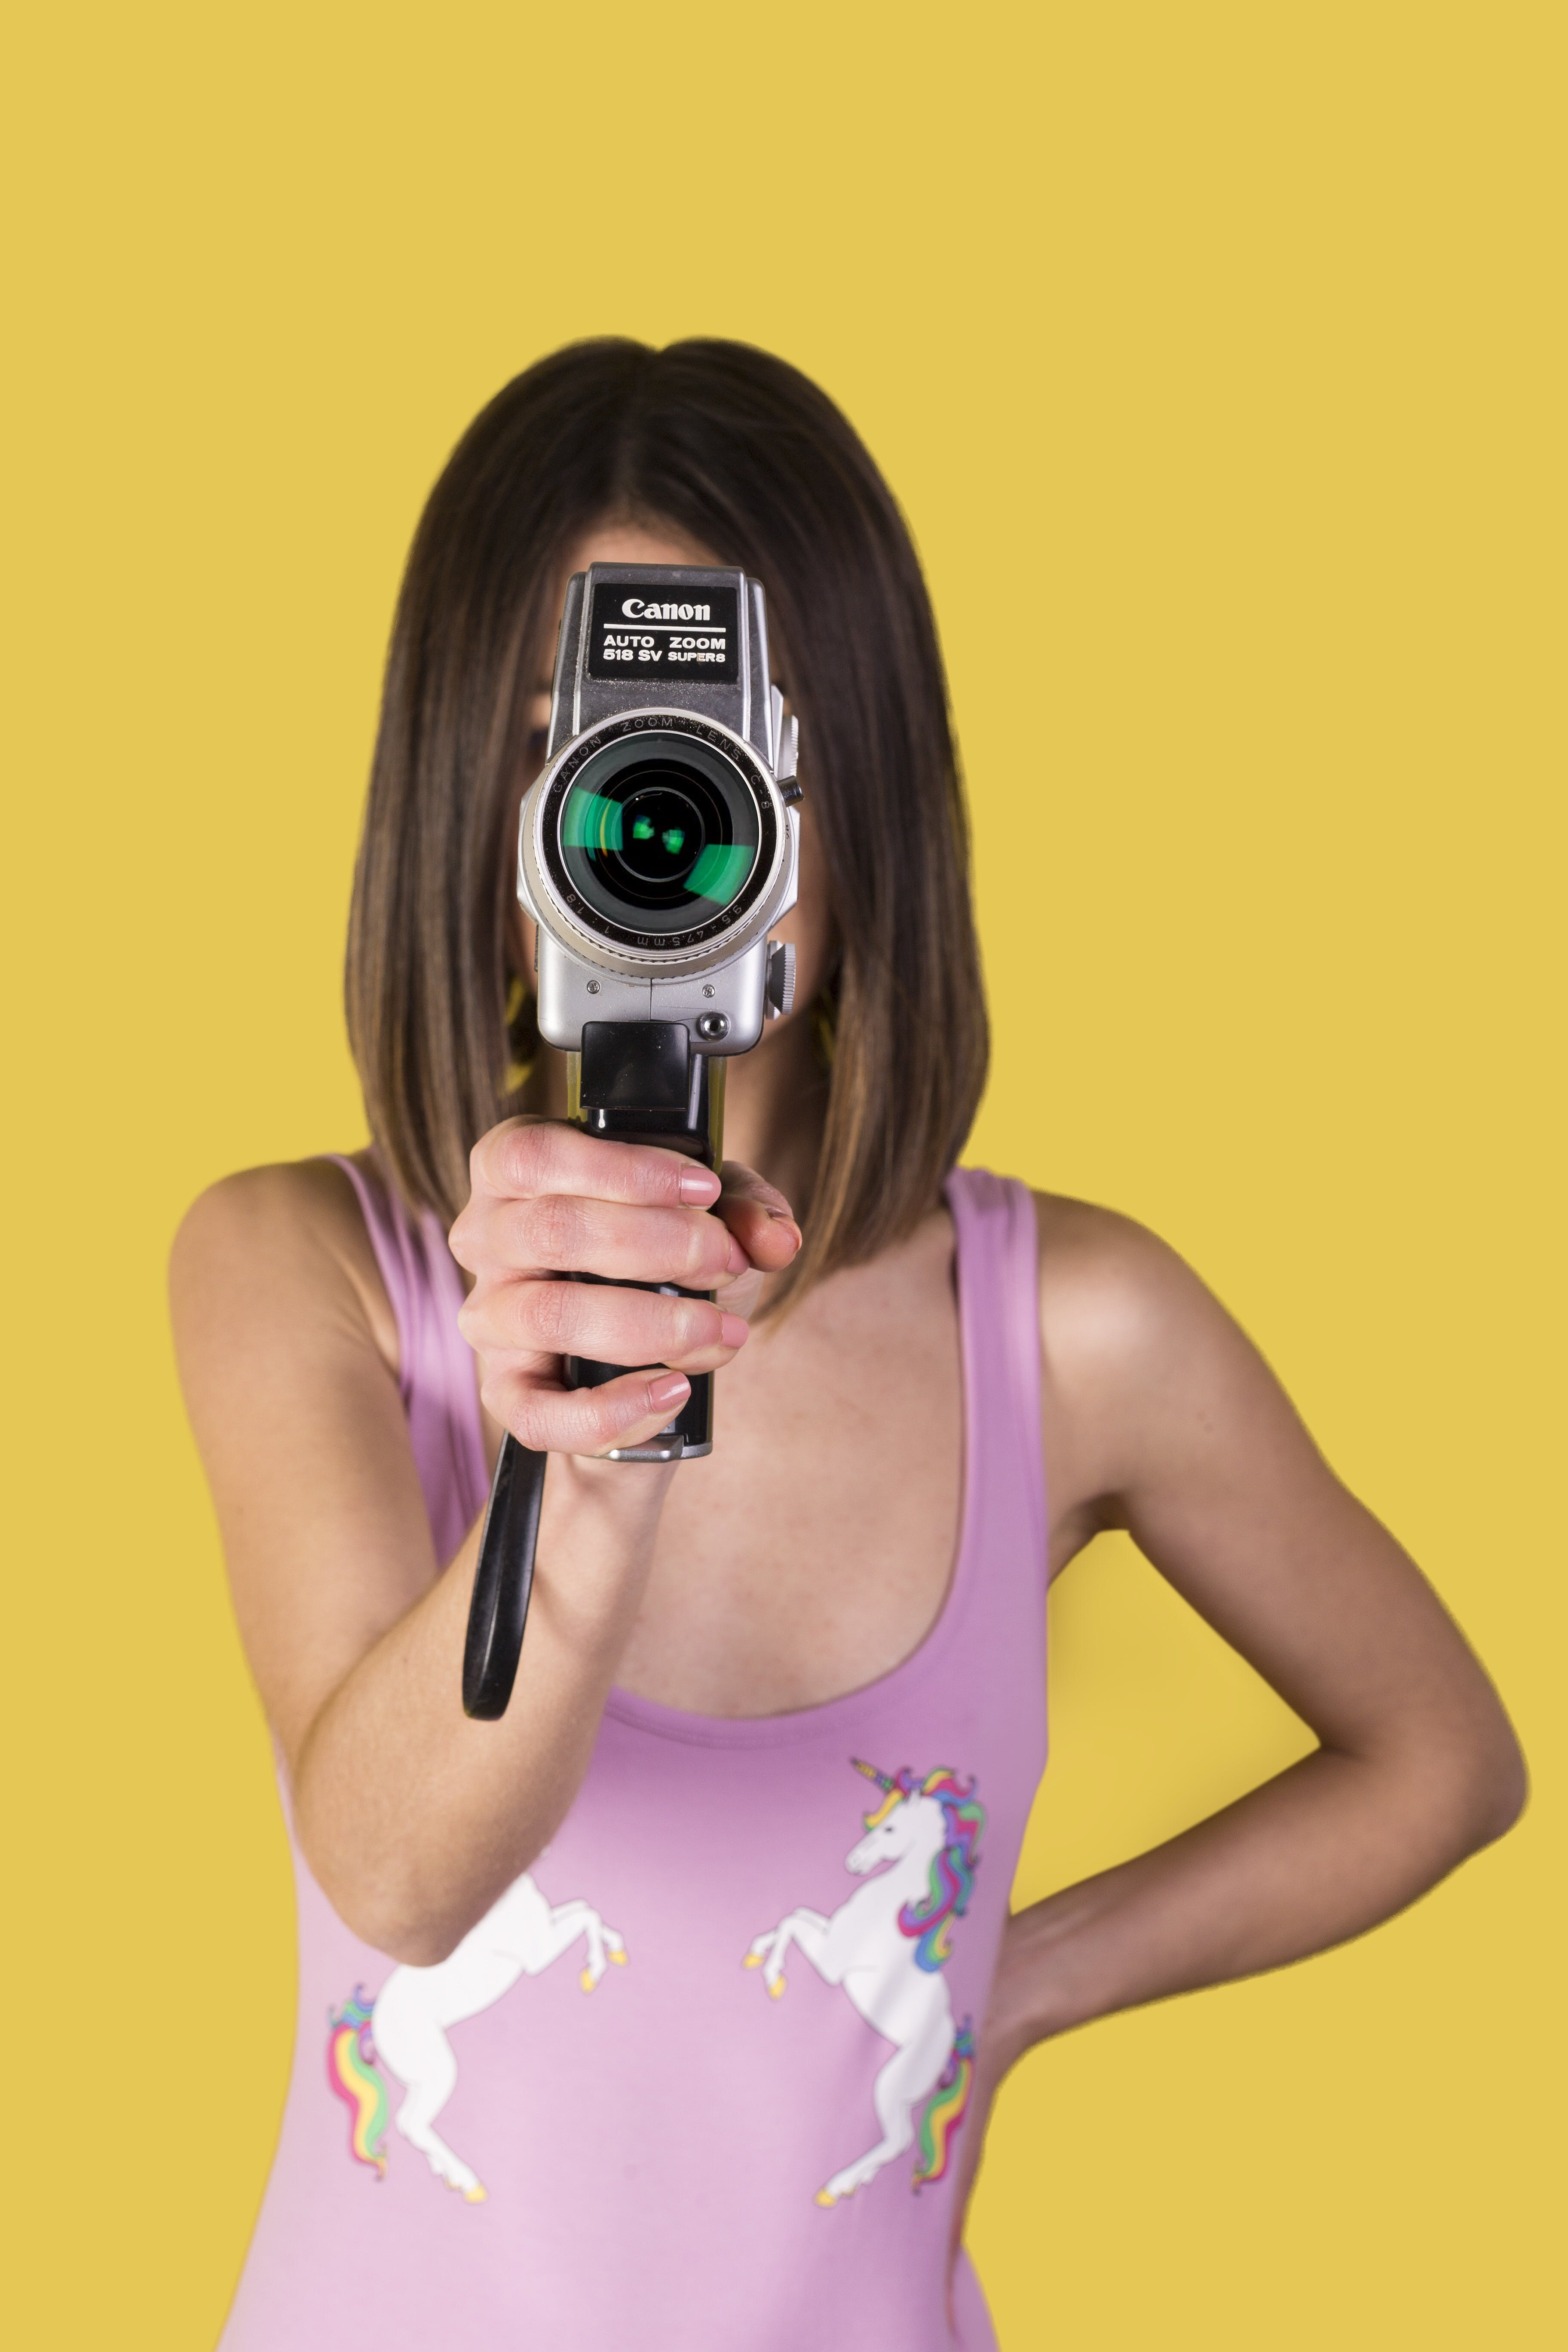 Girl Wearing Purple Tank Top Holding Canon Camera